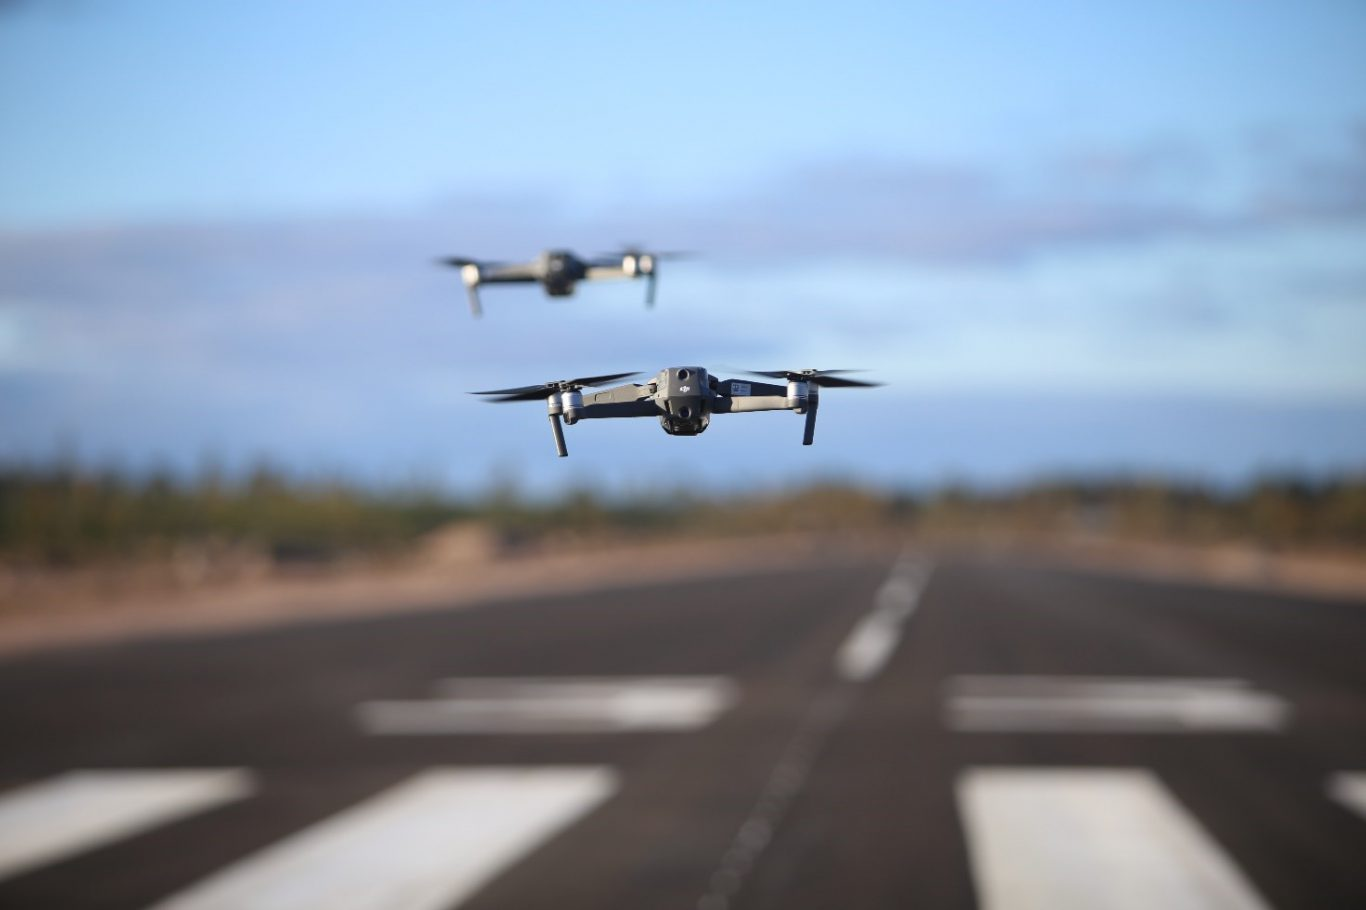 Drones create new opportunities for entrepreneurs